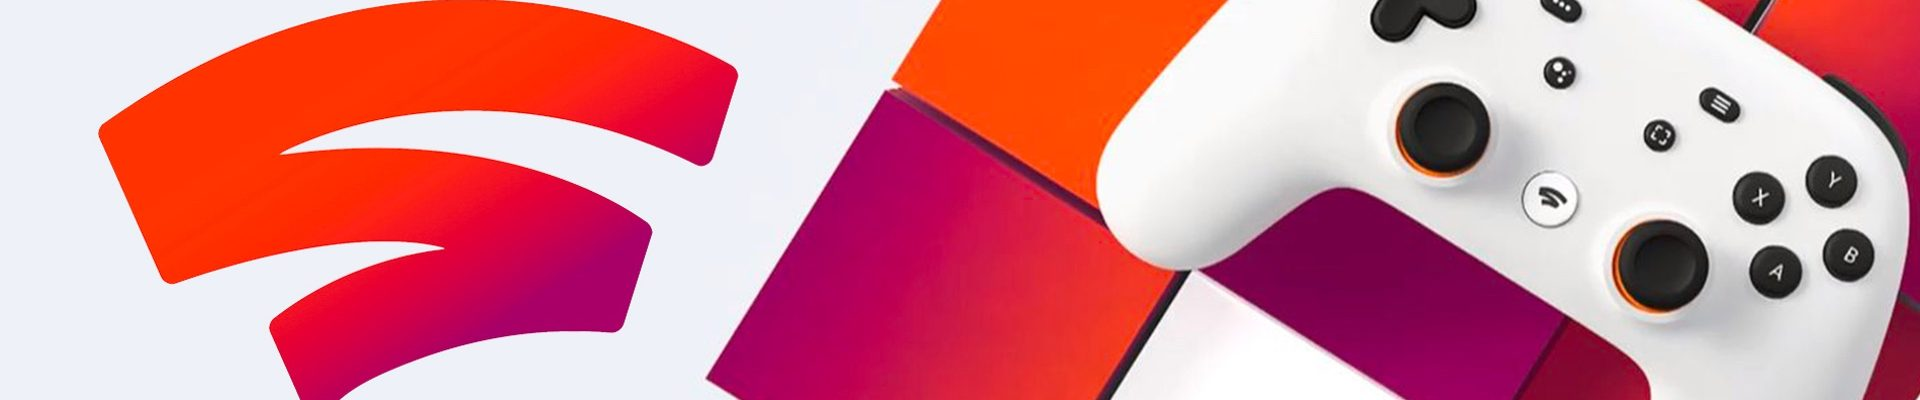 Google Stadia launch details